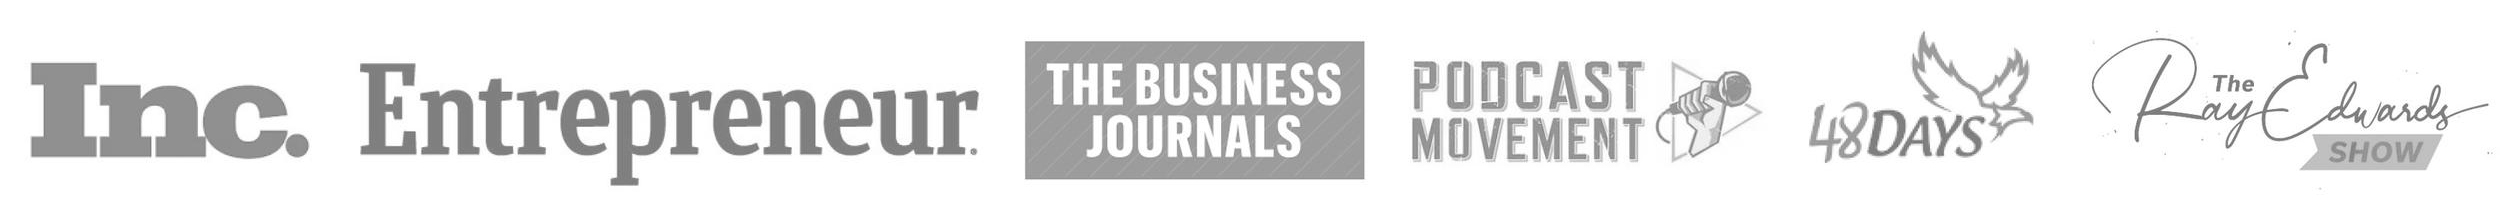 Inc., Entrepreneur, The Business Journals, Podcast Movement, 48 Days, The Ray Edwards Show